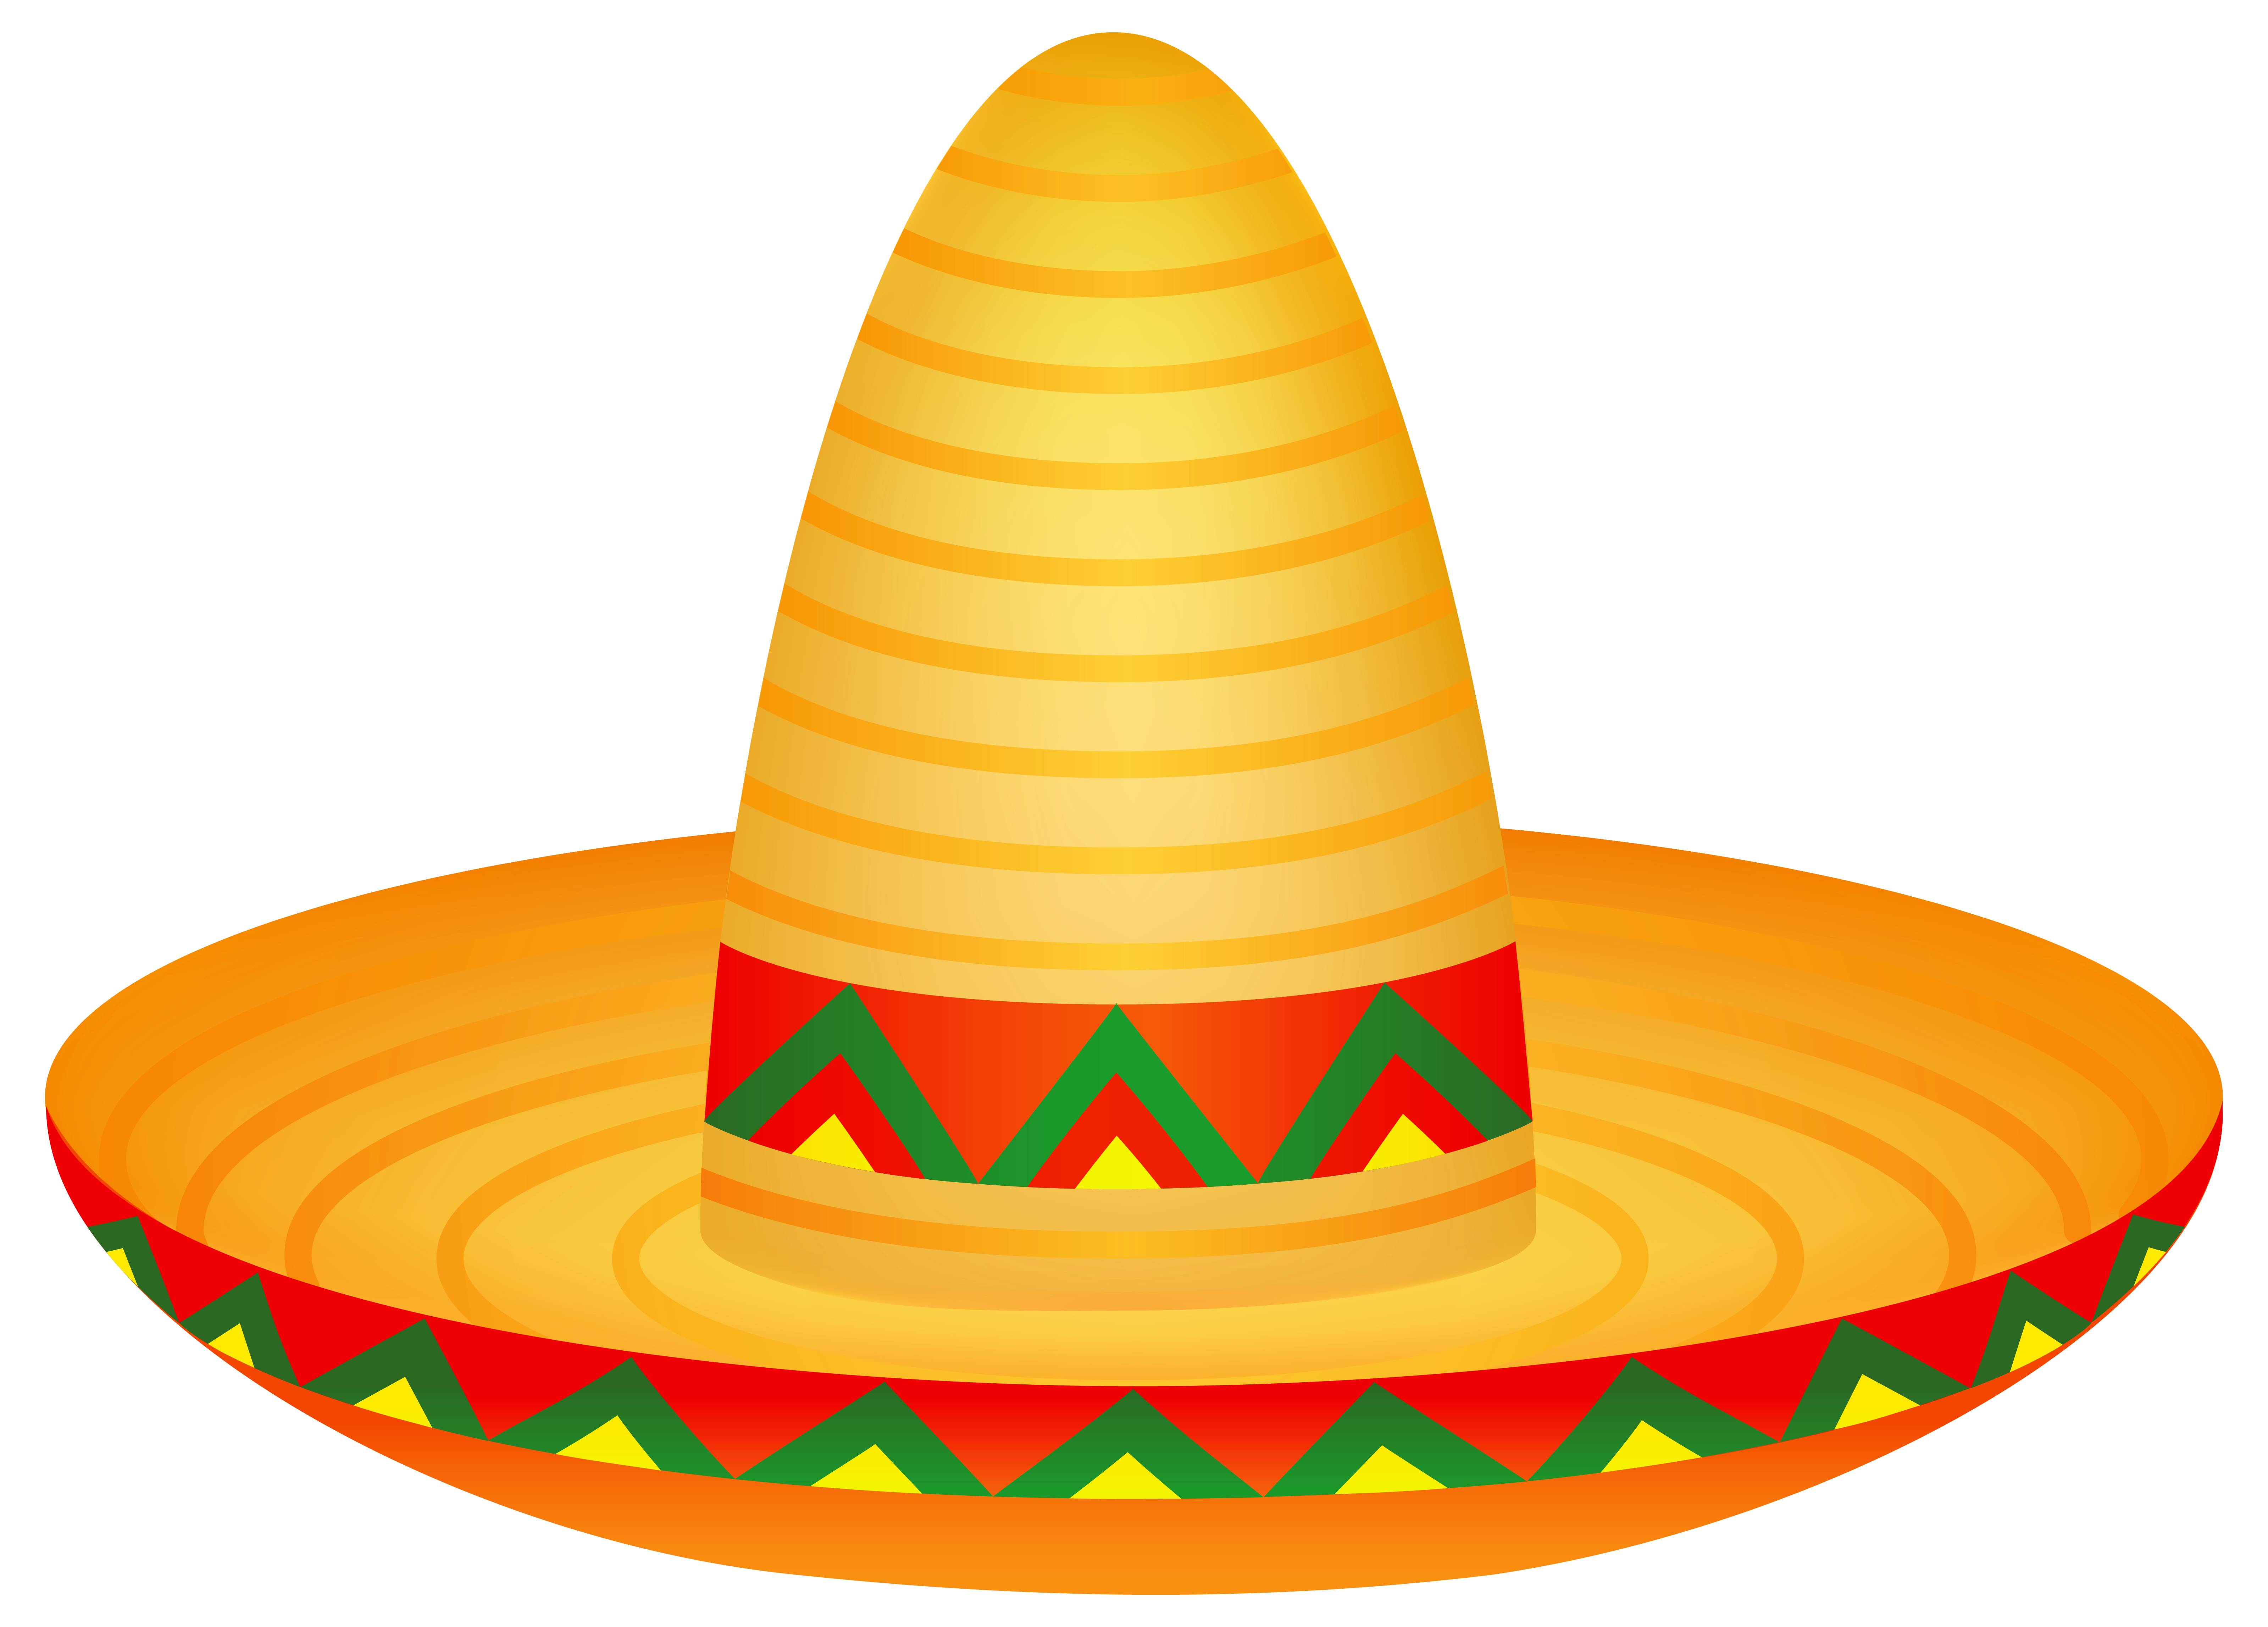 mexican hat lesbian dating site I've added an lgbt column for the website to make the site more inclusive and  talk  i recommend lesbian dating apps like her or scissr, or general dating apps  such  lesbian travelers have the added issue of being victims of hate crimes,  too  such as costa rica or mexico or one of the 22 countries that have  legalized.